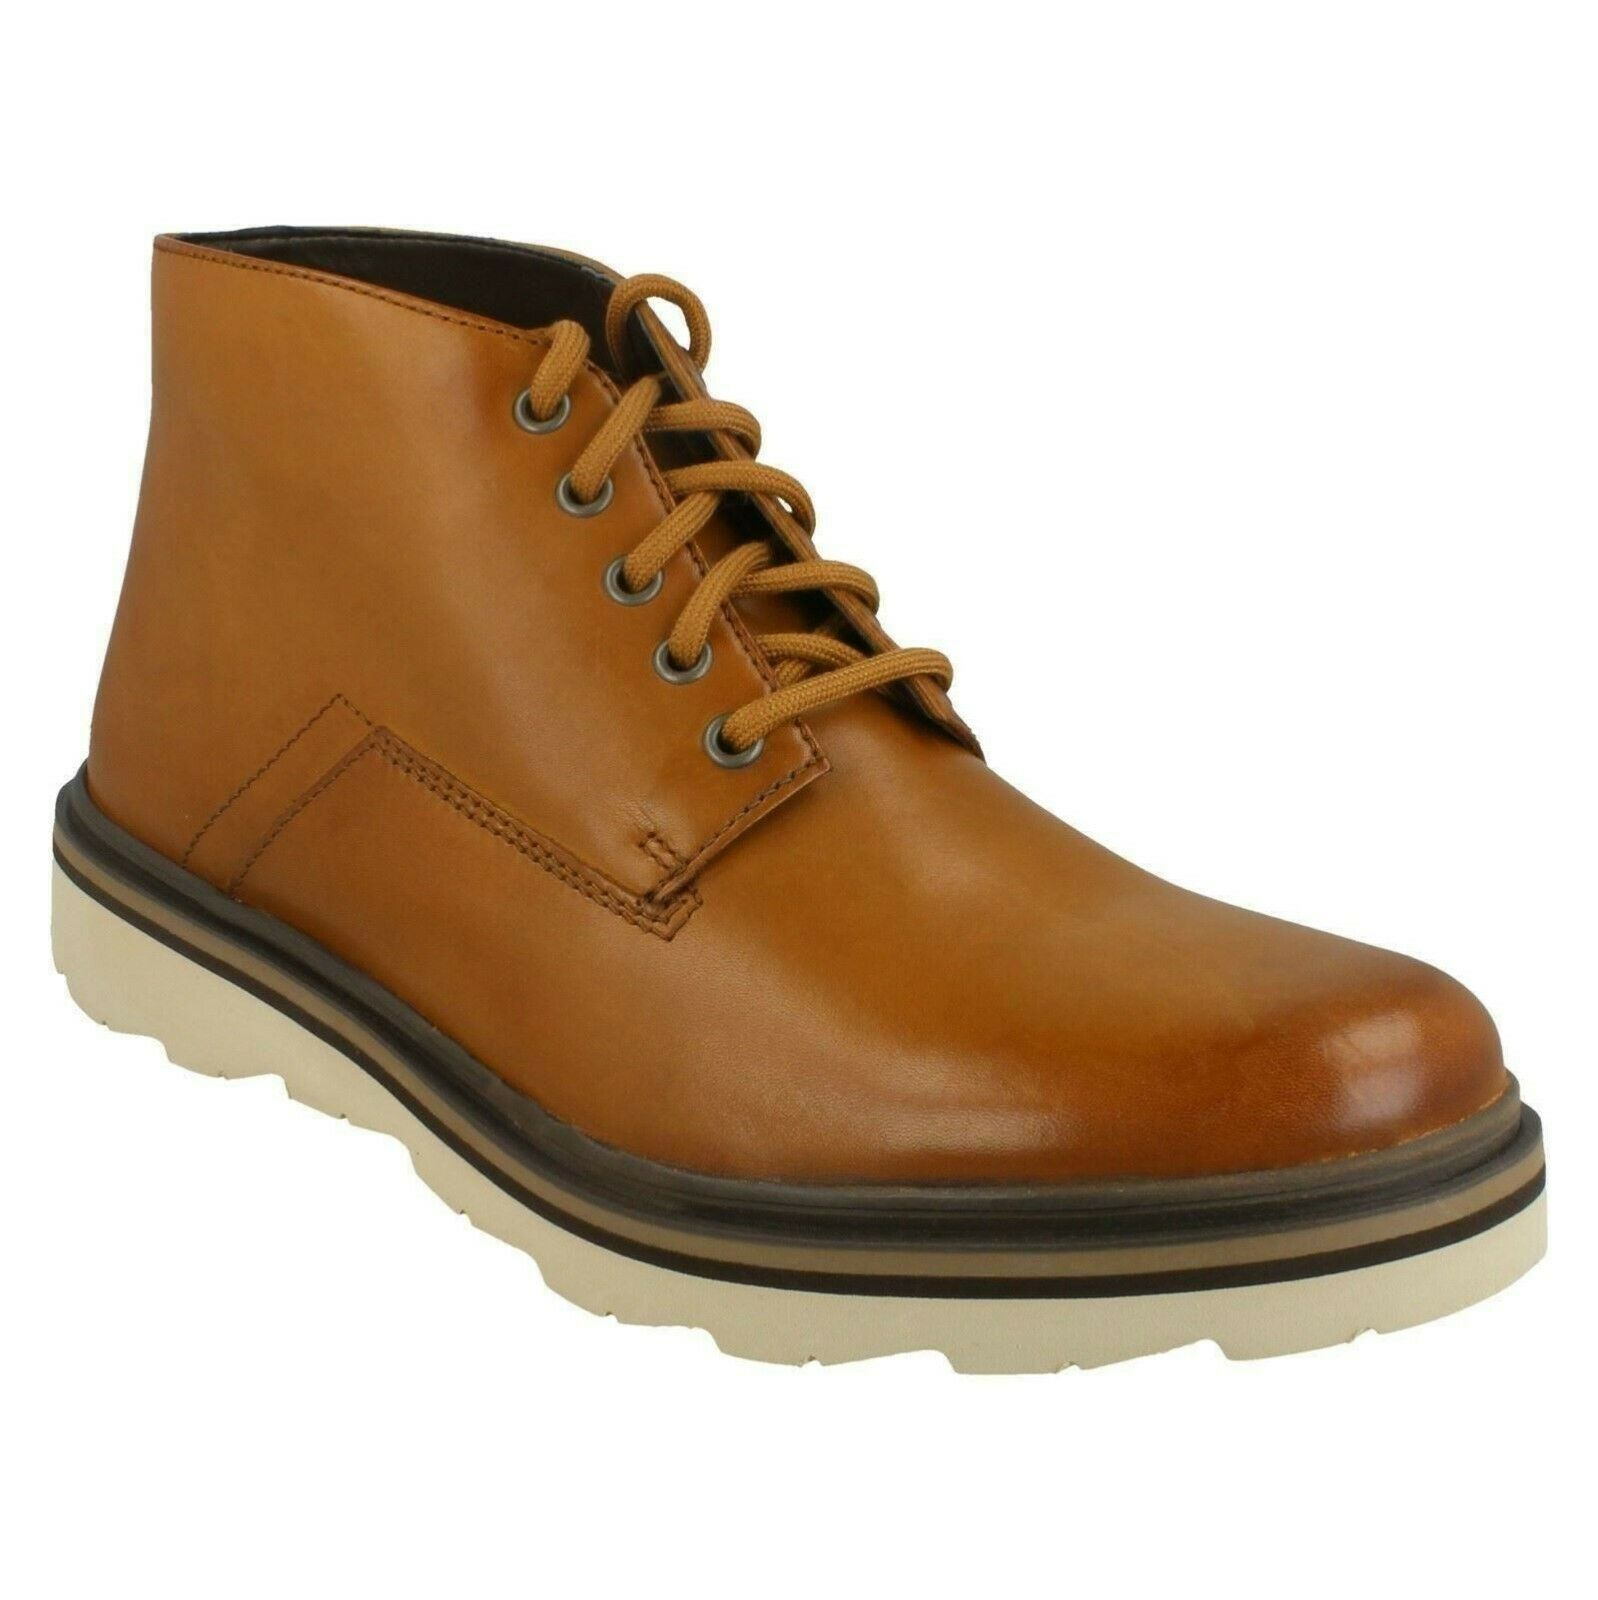 FRELAN MID MENS CLARKS EVERYDAY LEATHER CASUAL LACE UP ANKLE Stiefel Größe